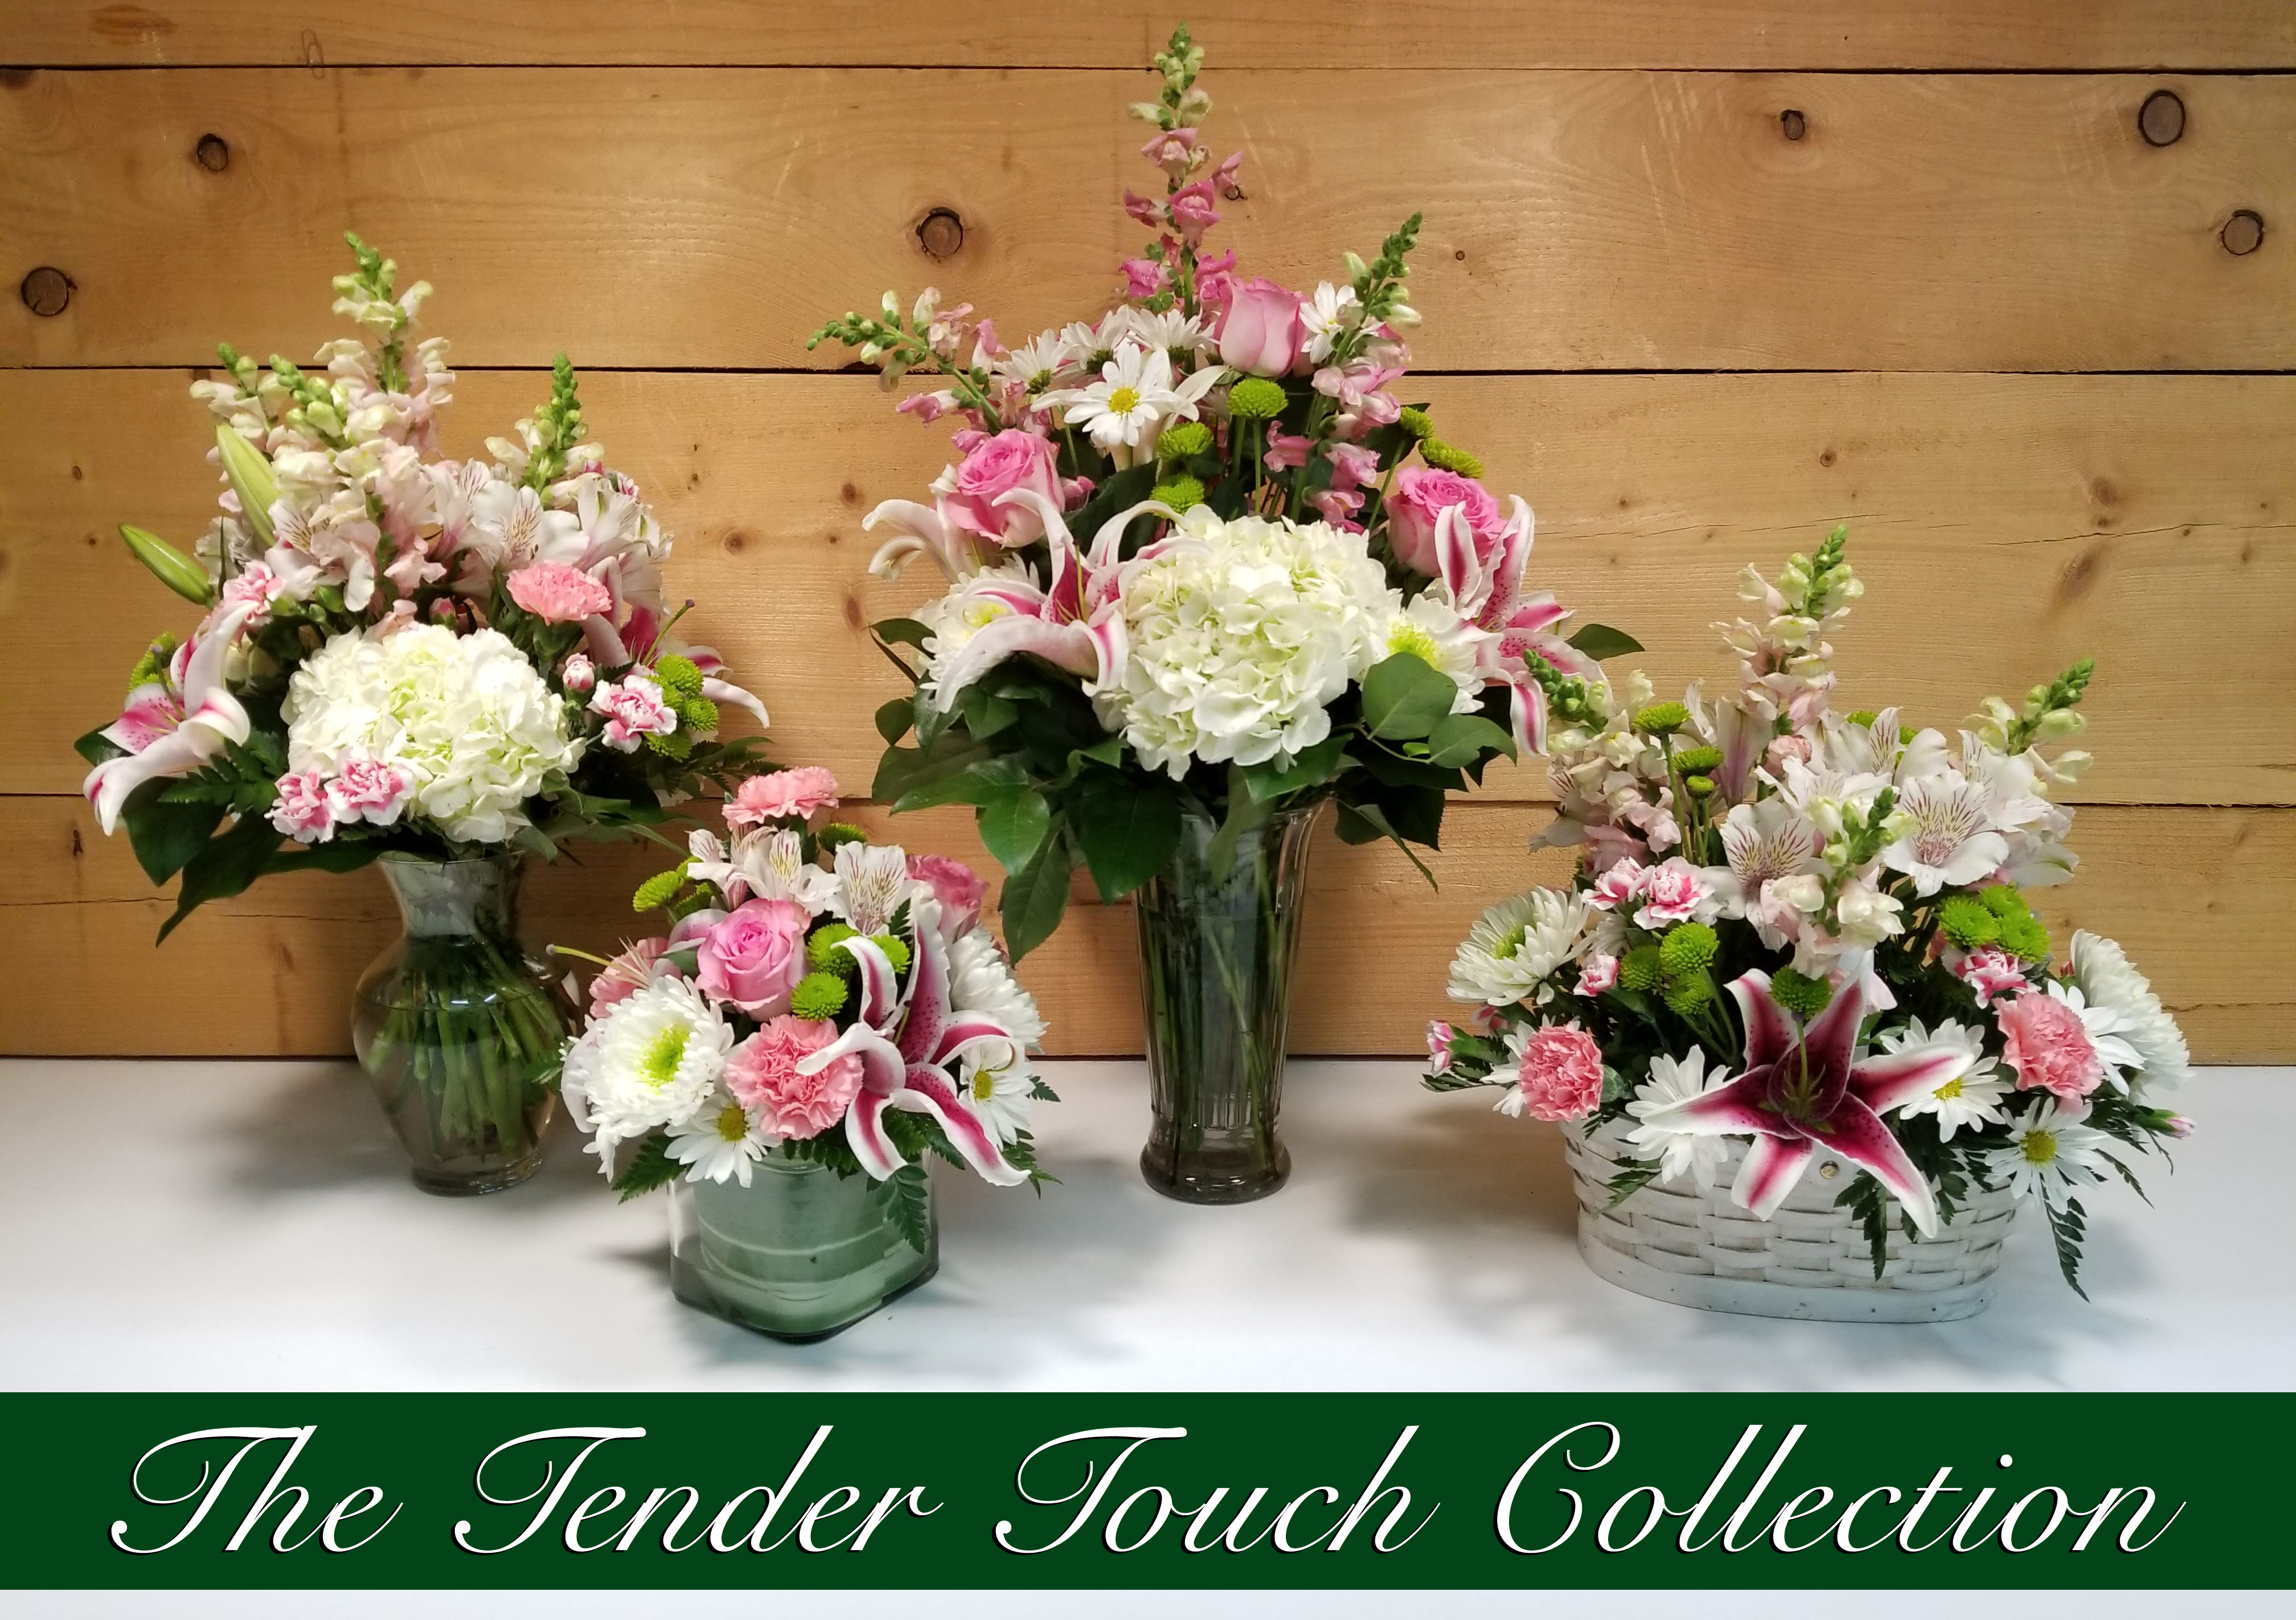 tender-touch-collection.jpg